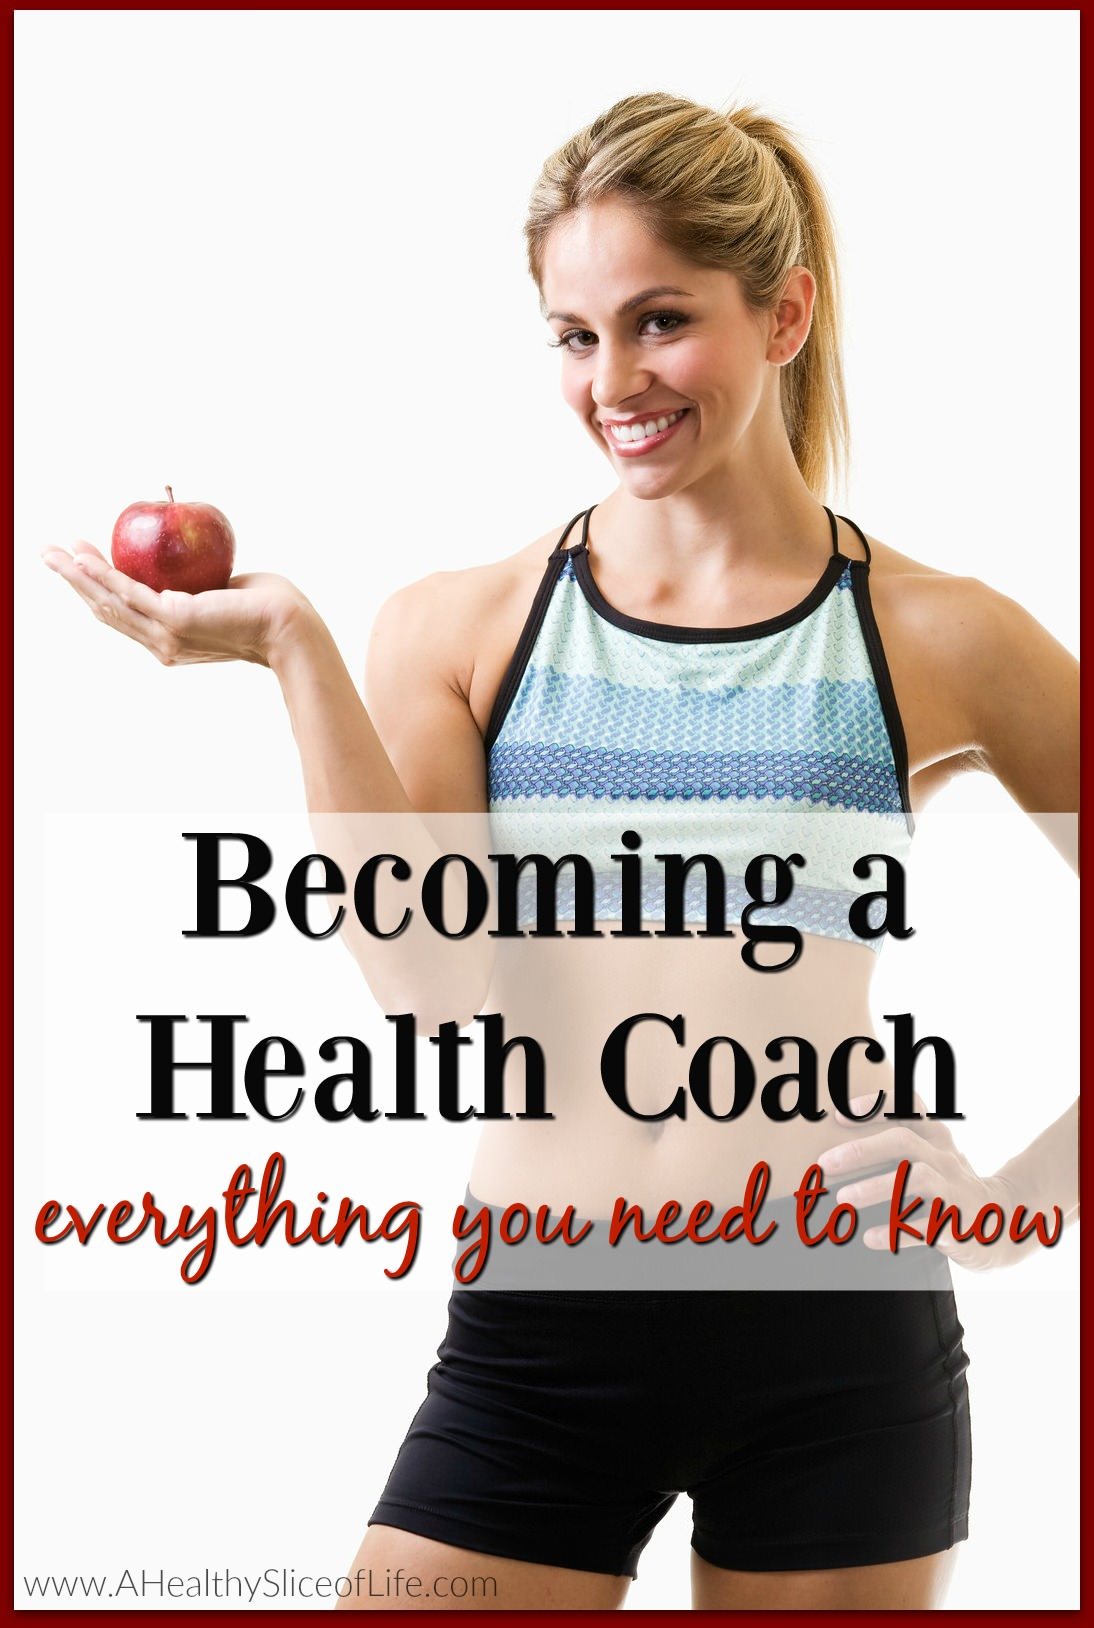 Becoming a Health Coach: Frequently Asked Questions